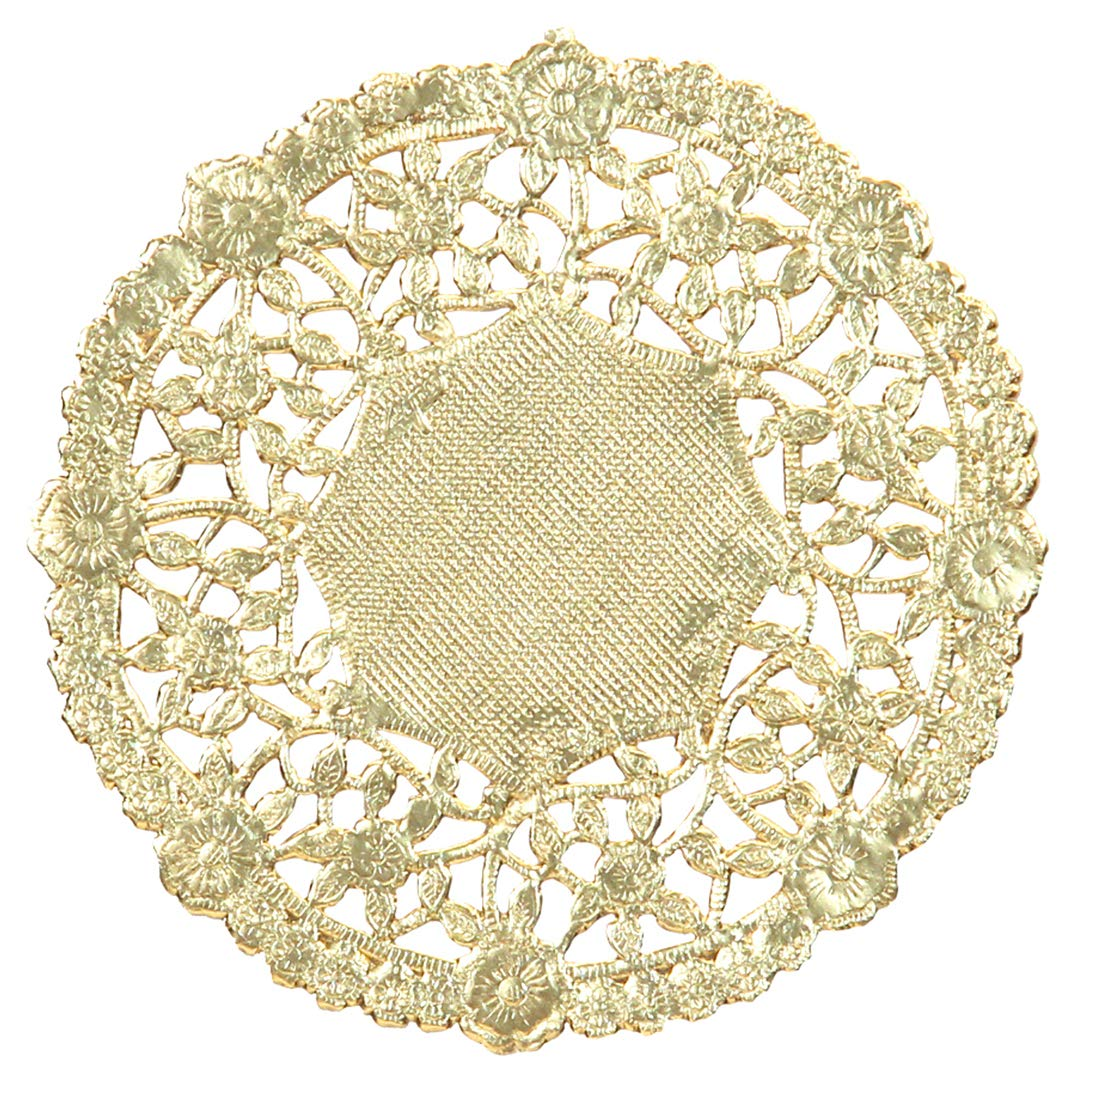 Hygloss Products 10 Inch Gold Foil Doilies - Round Doilies Made in the USA, 12 Pack Inc. 6121